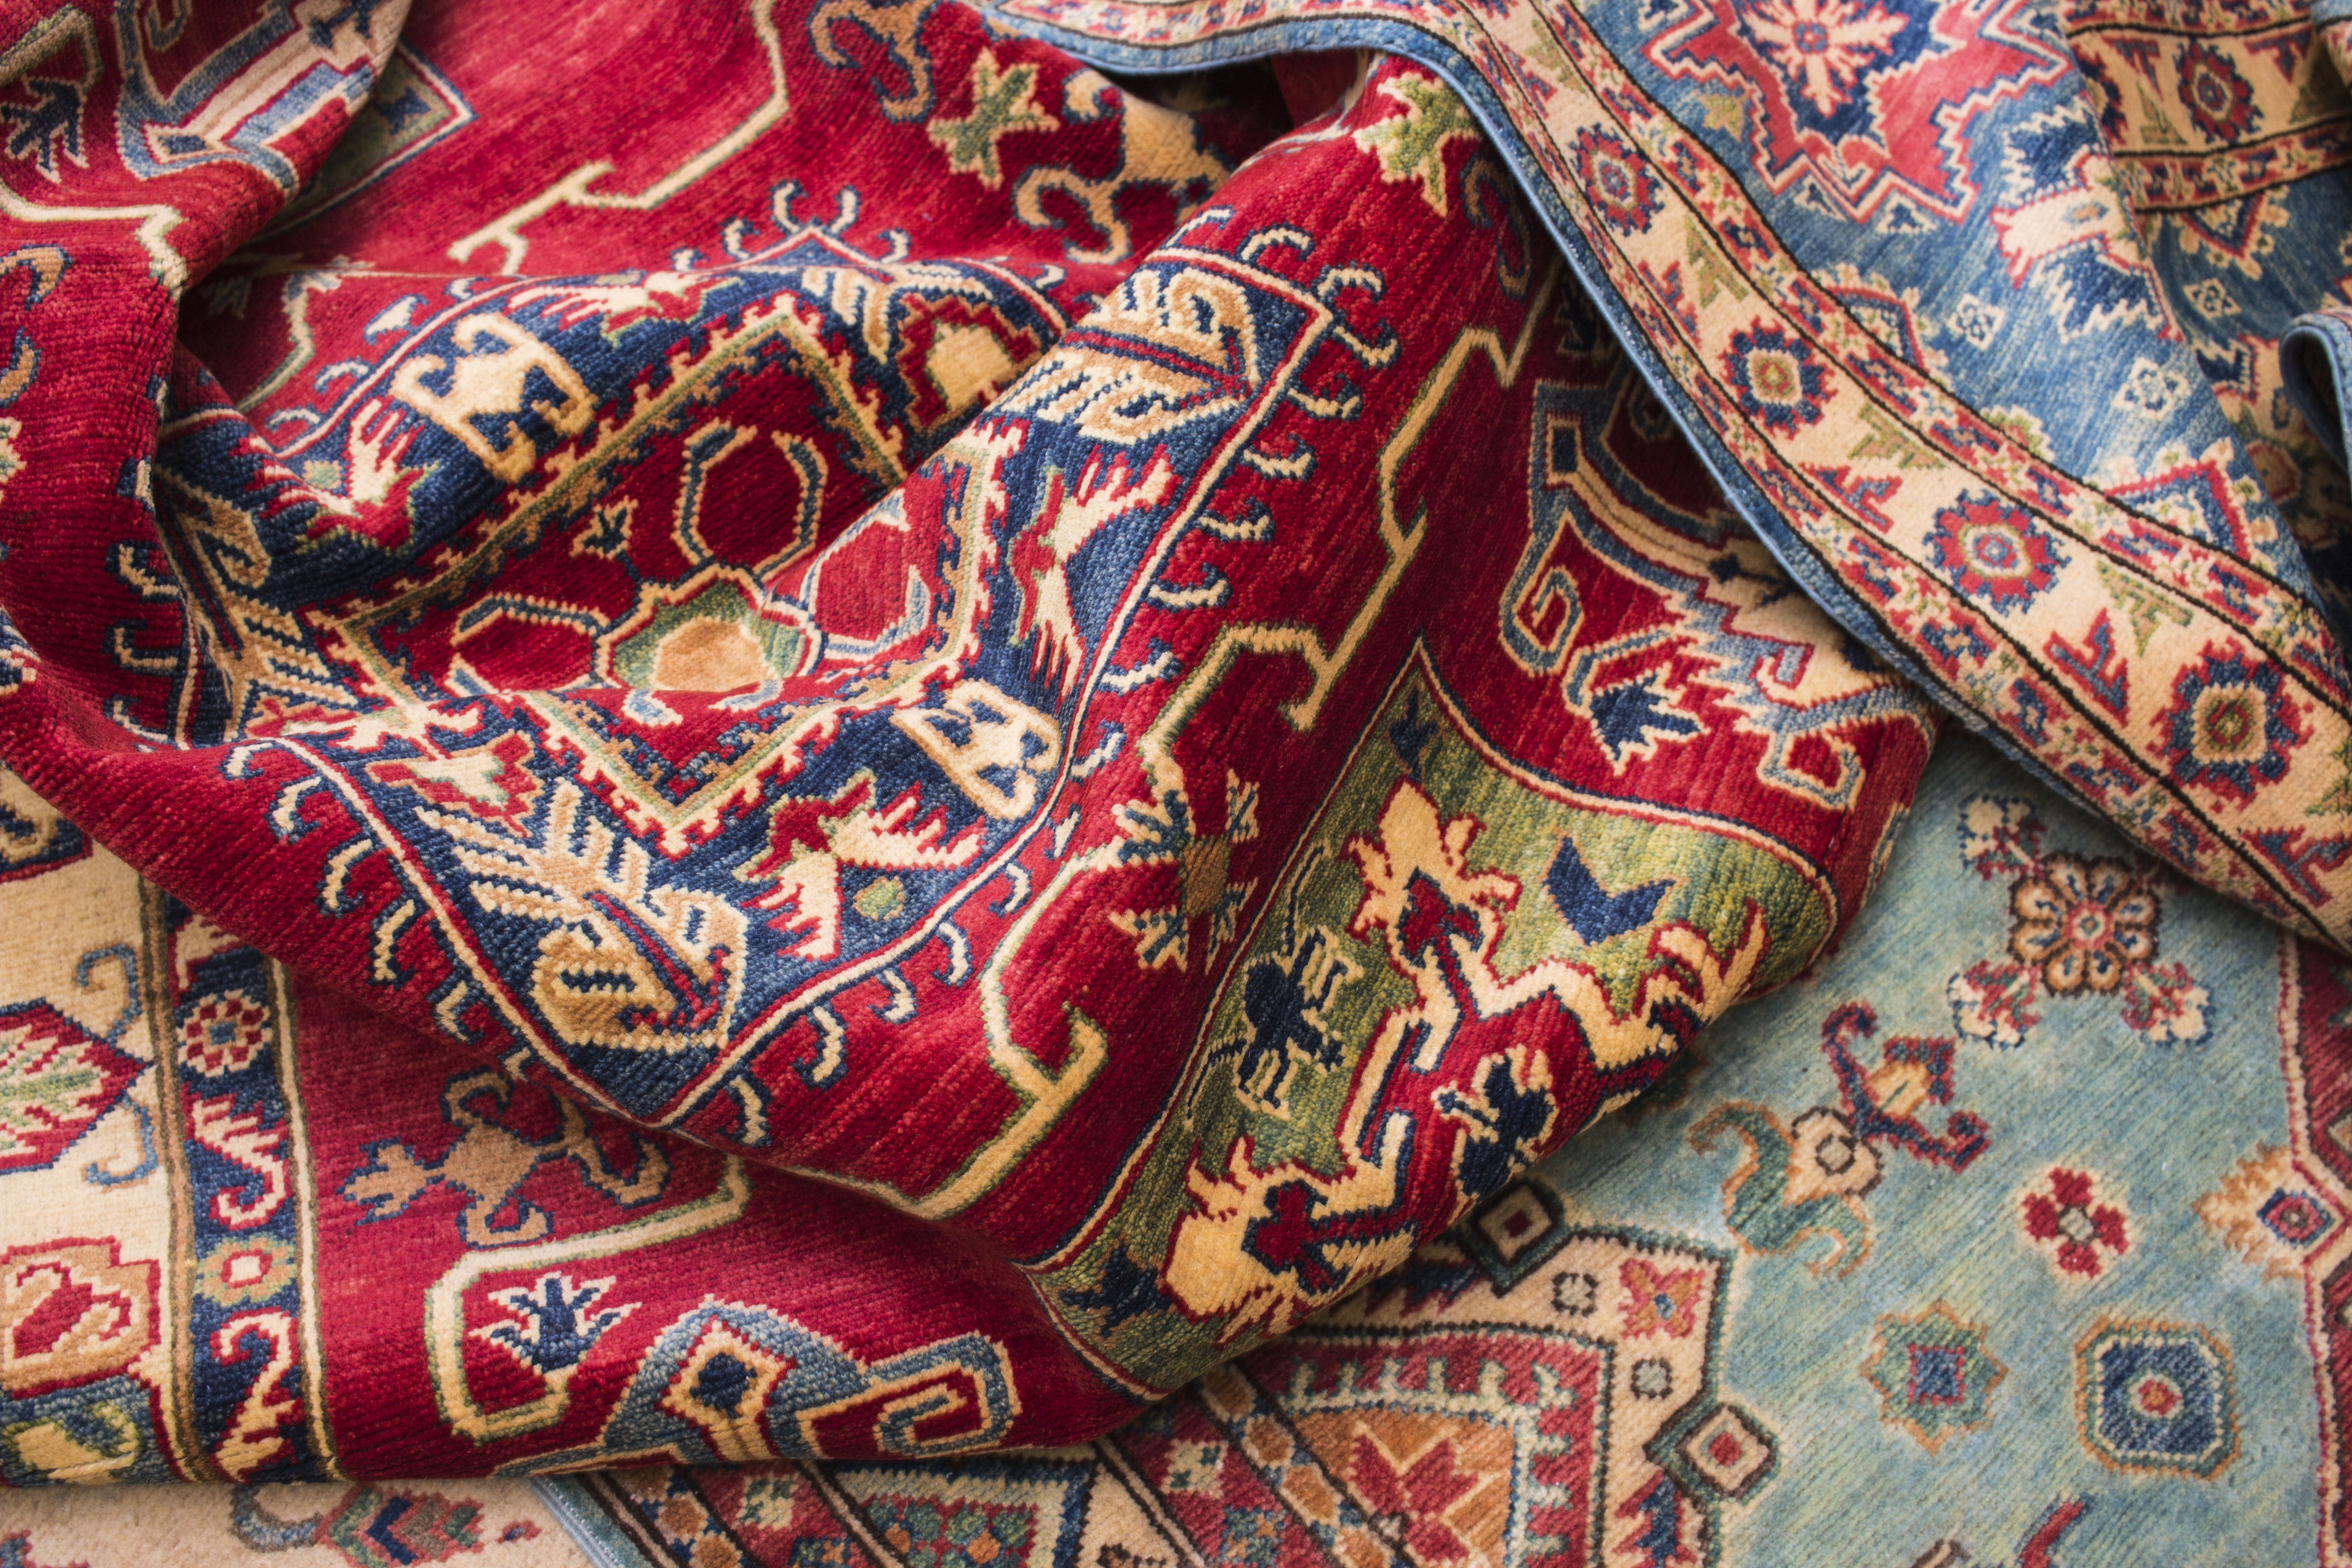 red, white, and blue floral textile